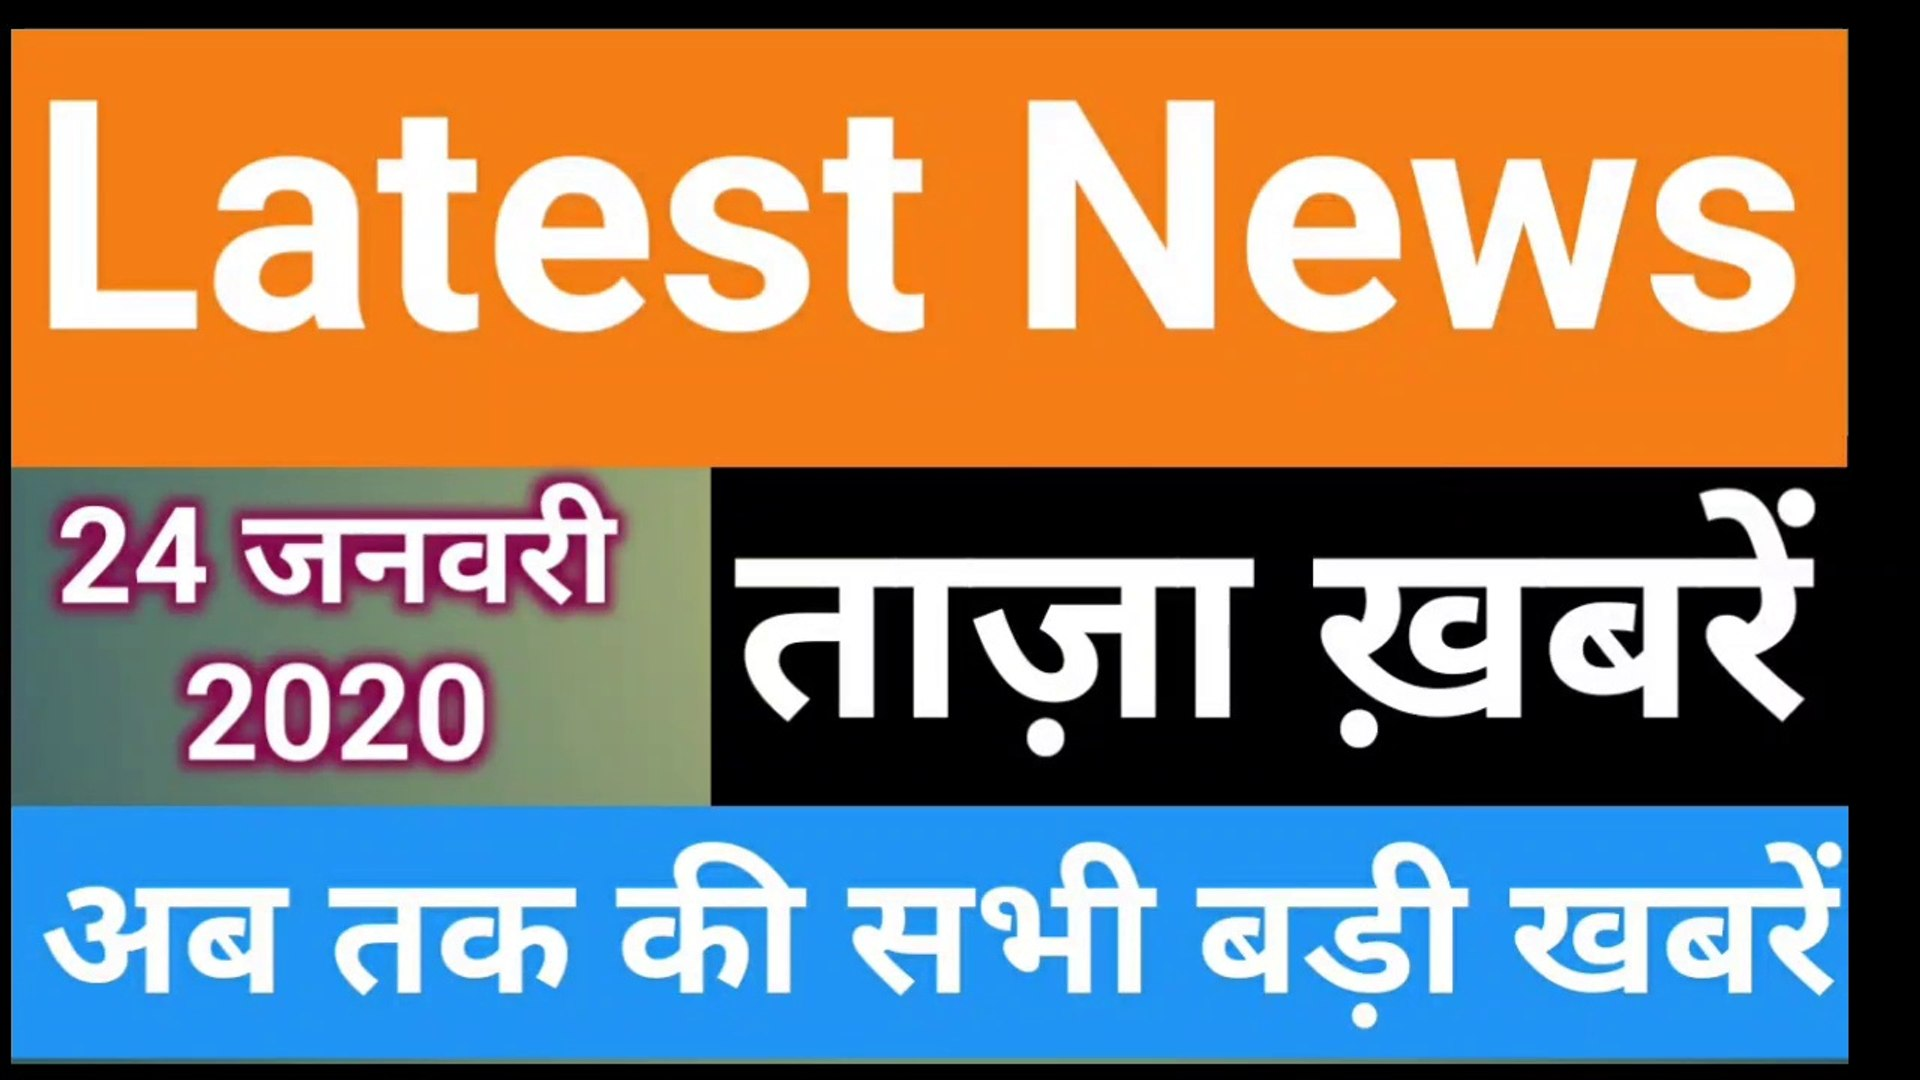 24 January 2020 : Morning News | Latest News Today |  Today News | Hindi News | India News